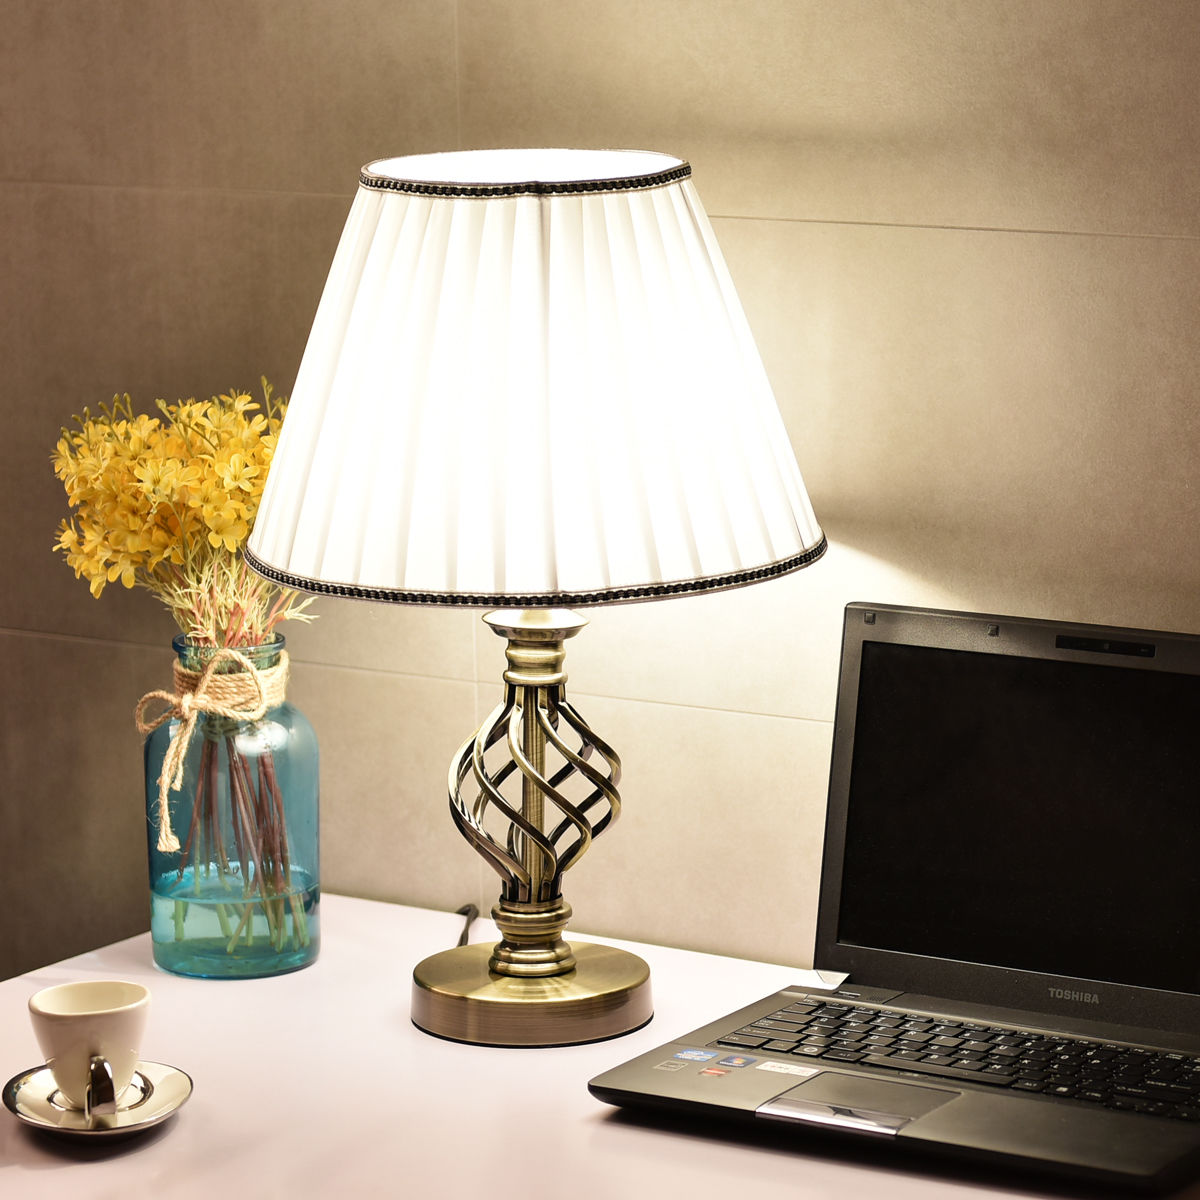 costway antique brass bedside table lamp w led bulb office light white